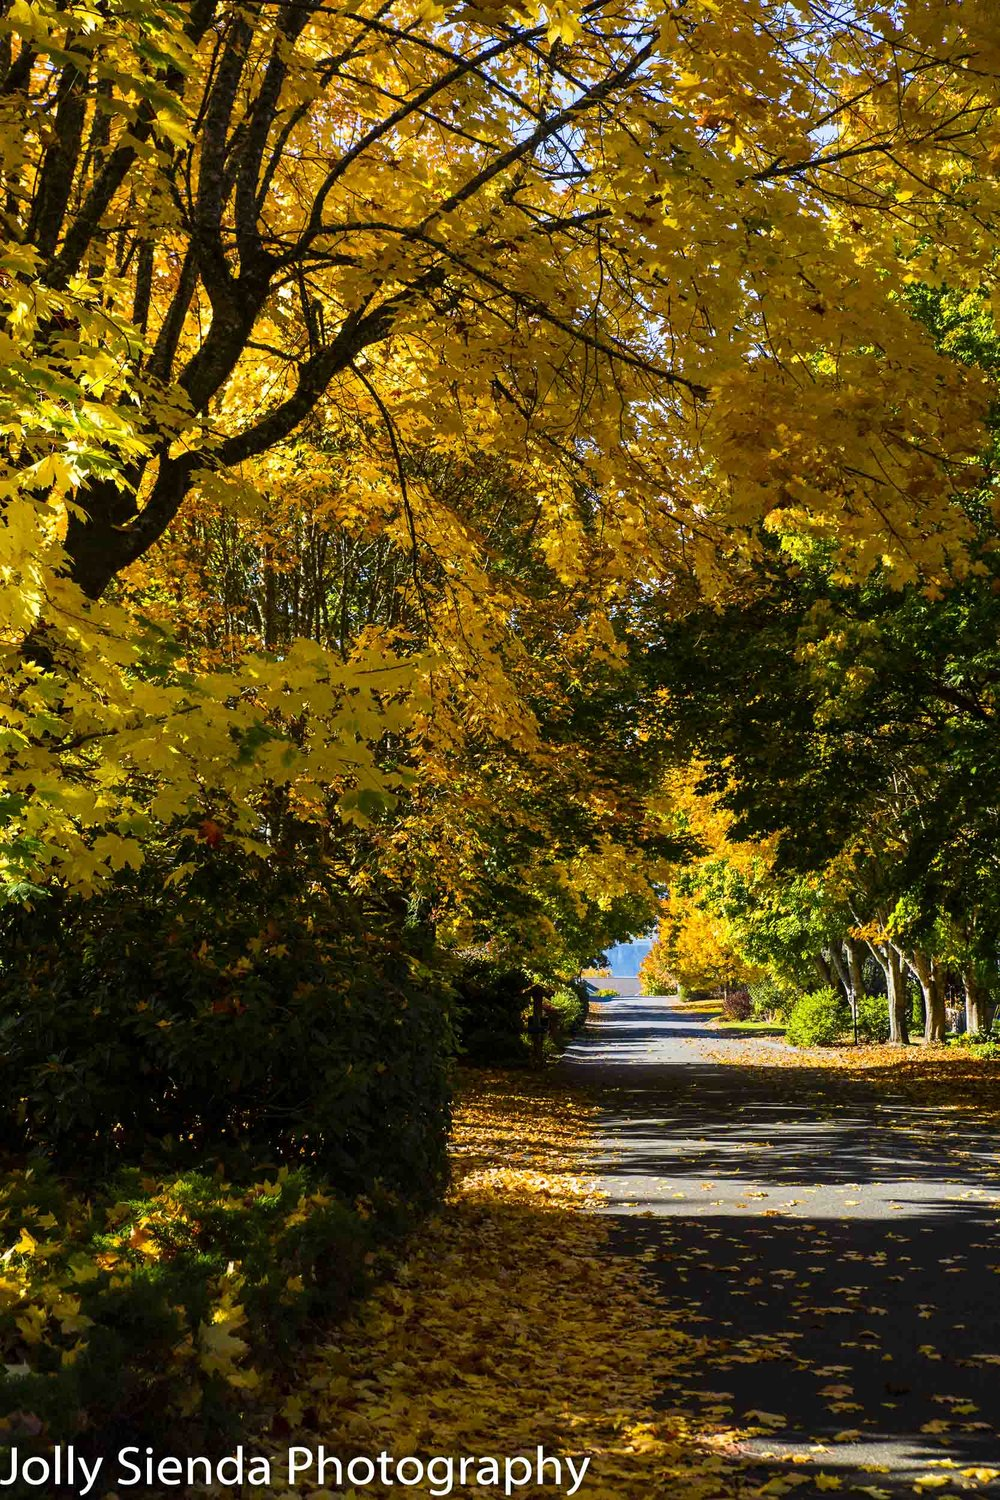 Golden yellow fall trees shade a sunny roadway